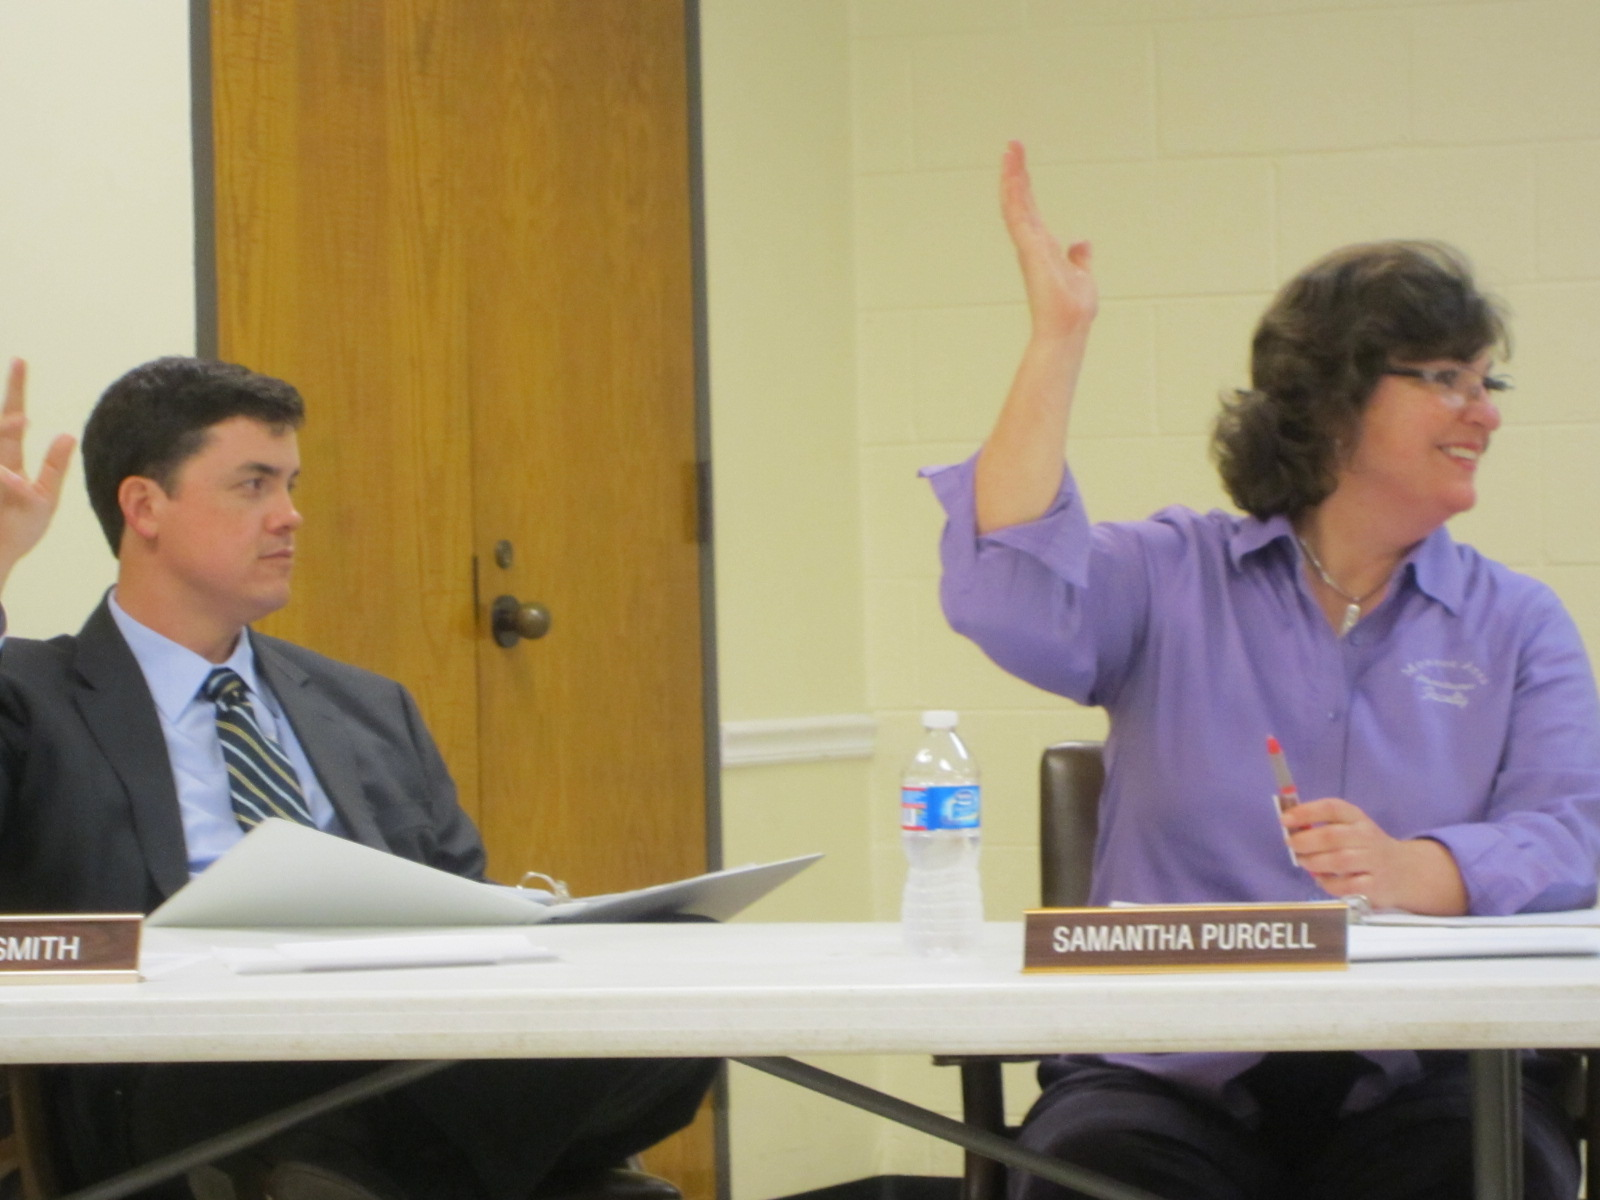 council members toby smith and samantha purcell vote in the affirmative for one of the businesses that evening